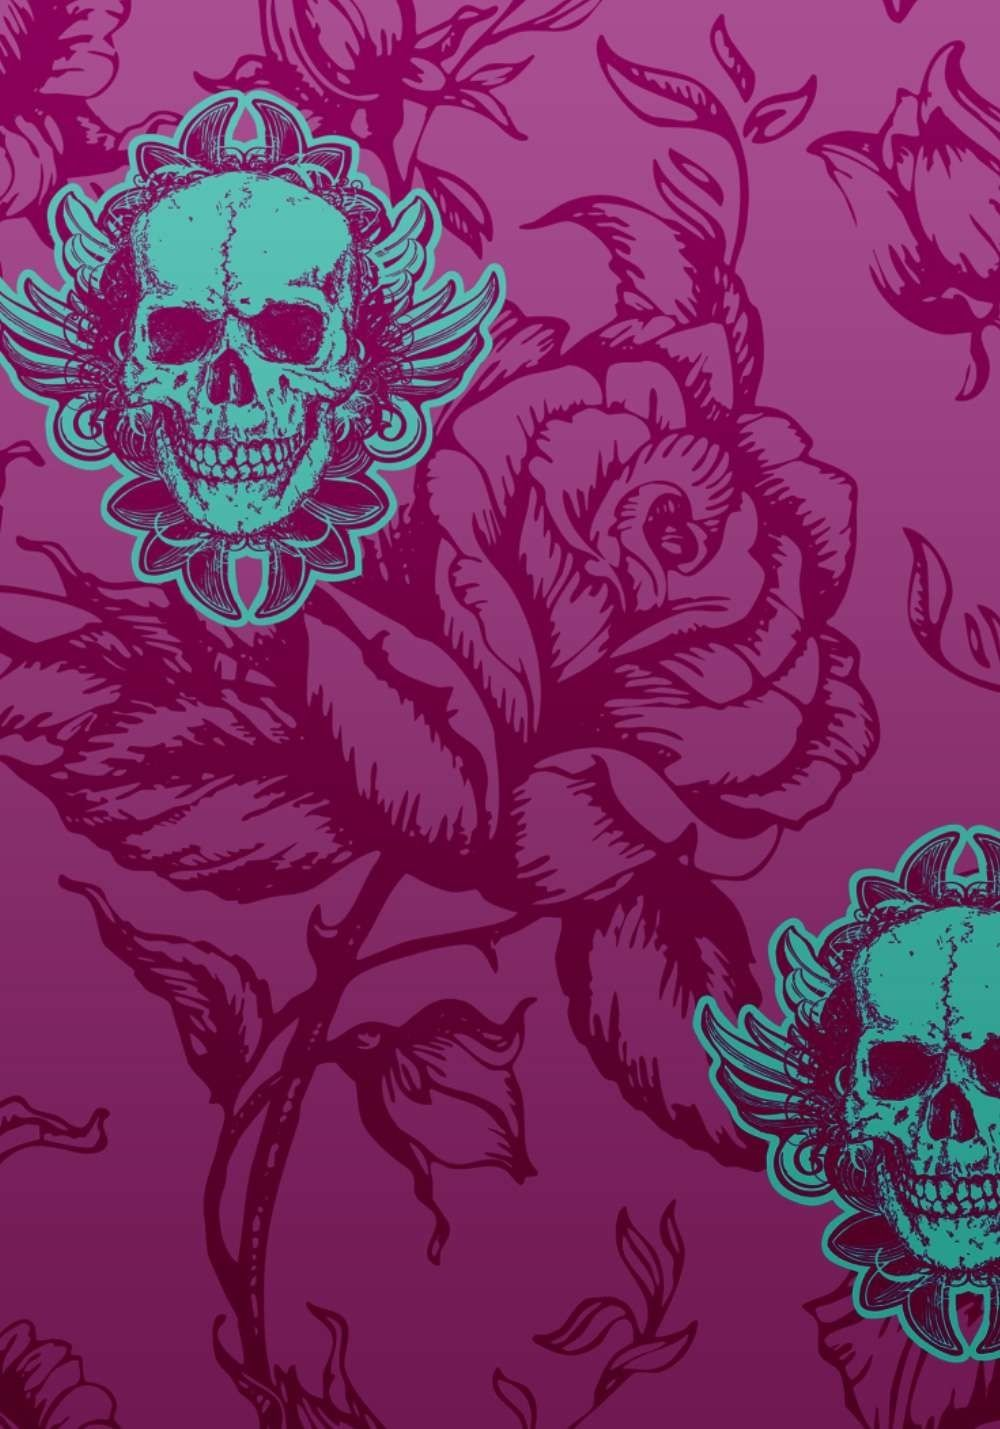 Skull Rose Wallpaper Skull Wallpaper Black Skulls Wallpaper